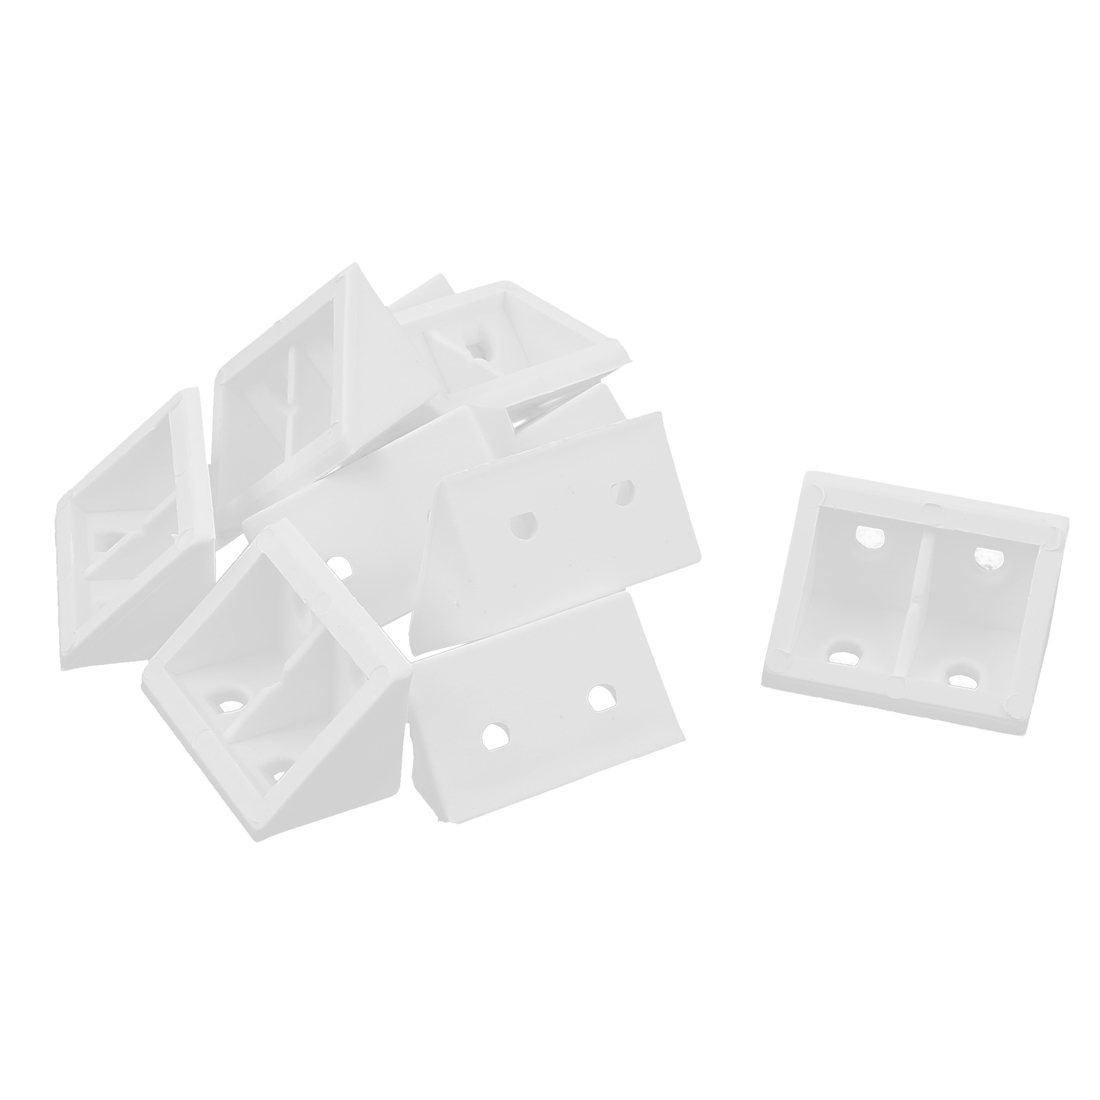 10 Pcs 90 Degree White Plastic Furniture Closet Cabinet Corner Connectors